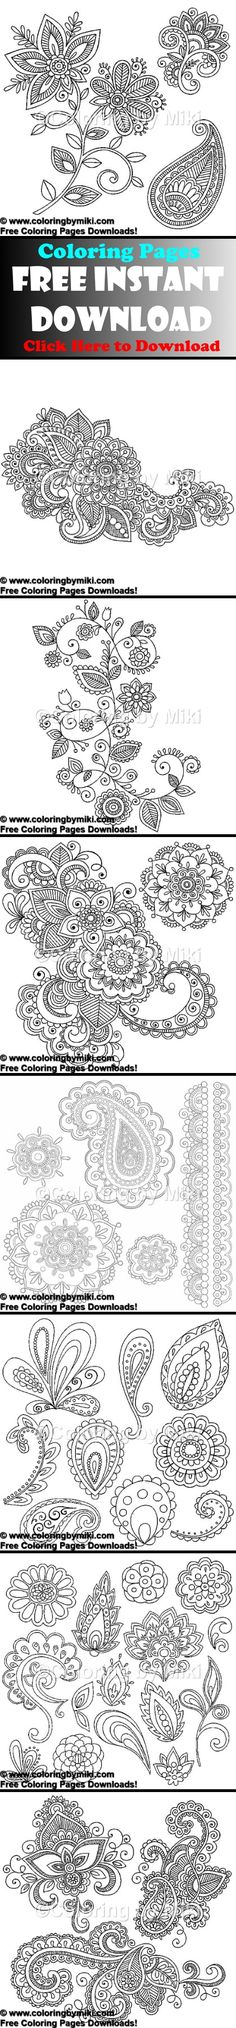 Doodle Bears Coloring Pages – GetColoringPages.org #coloring ...